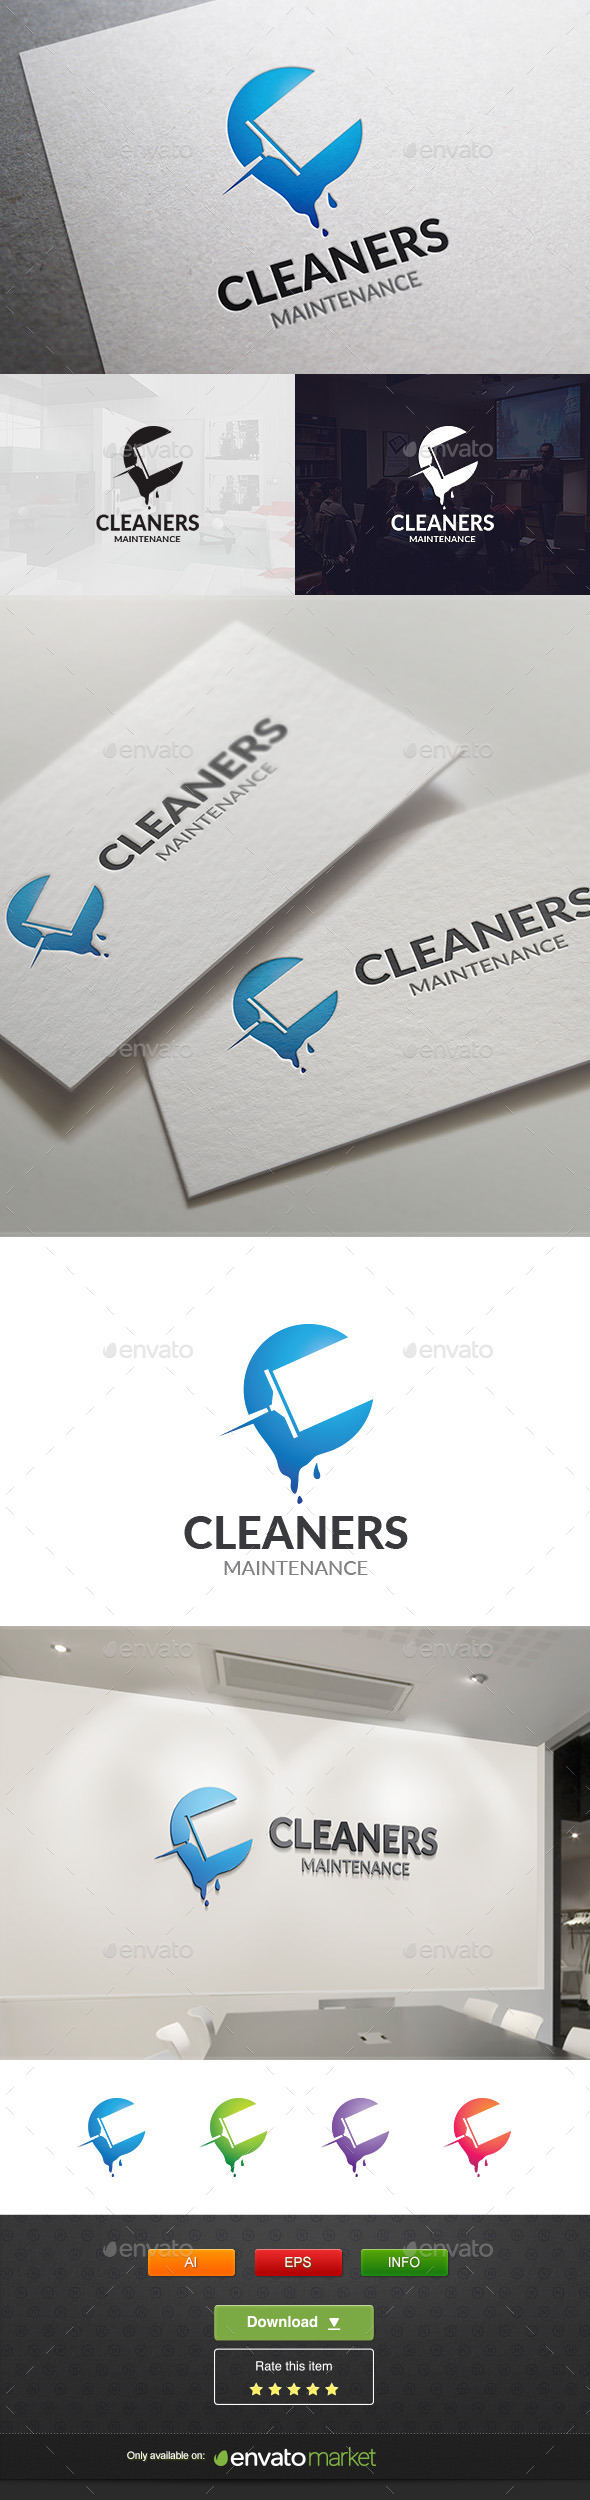 Clean Tool - Objects Logo Templates